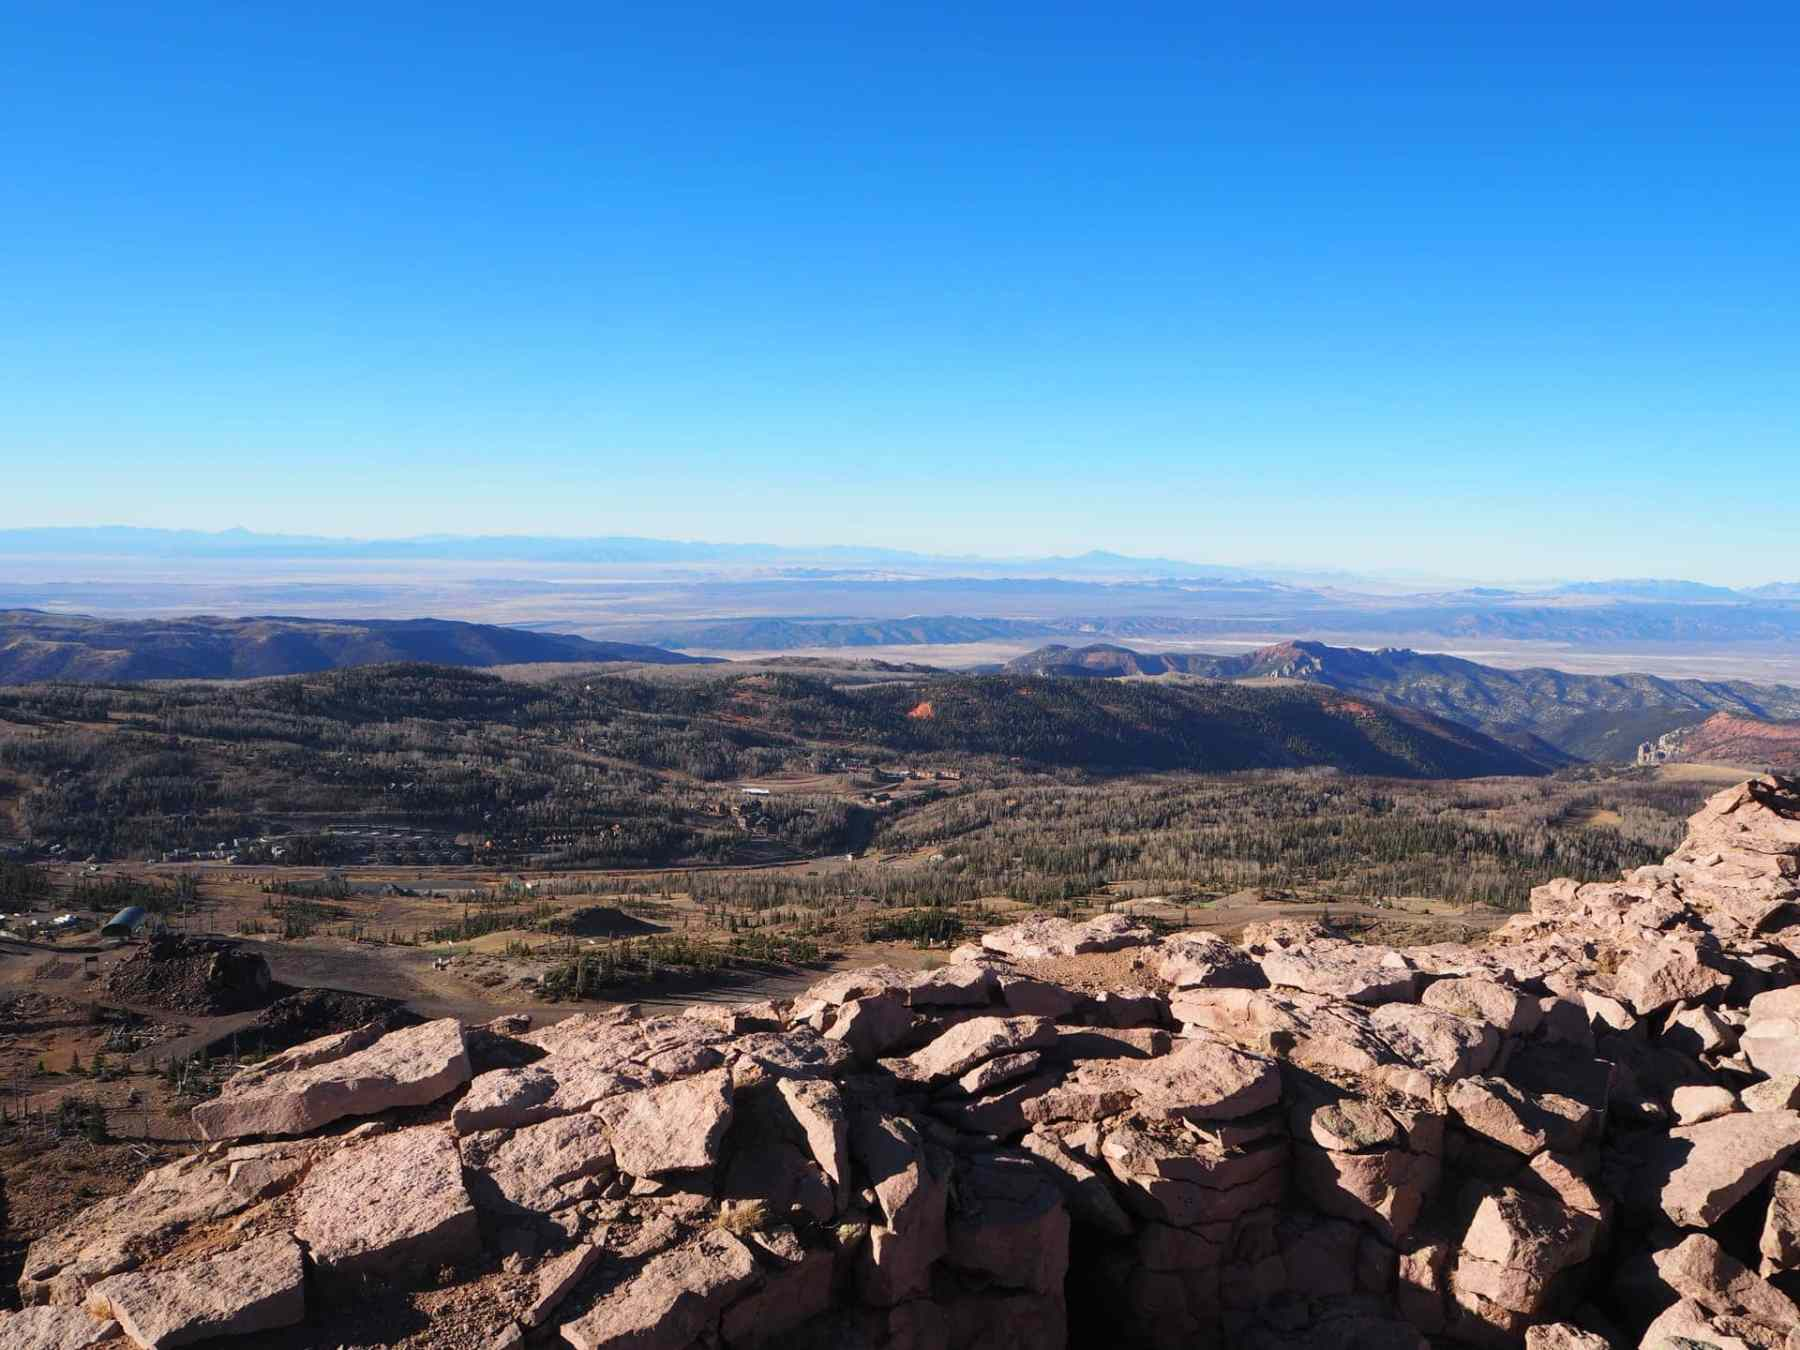 You can see parts of Utah, Nevada and Arizona from this peak!